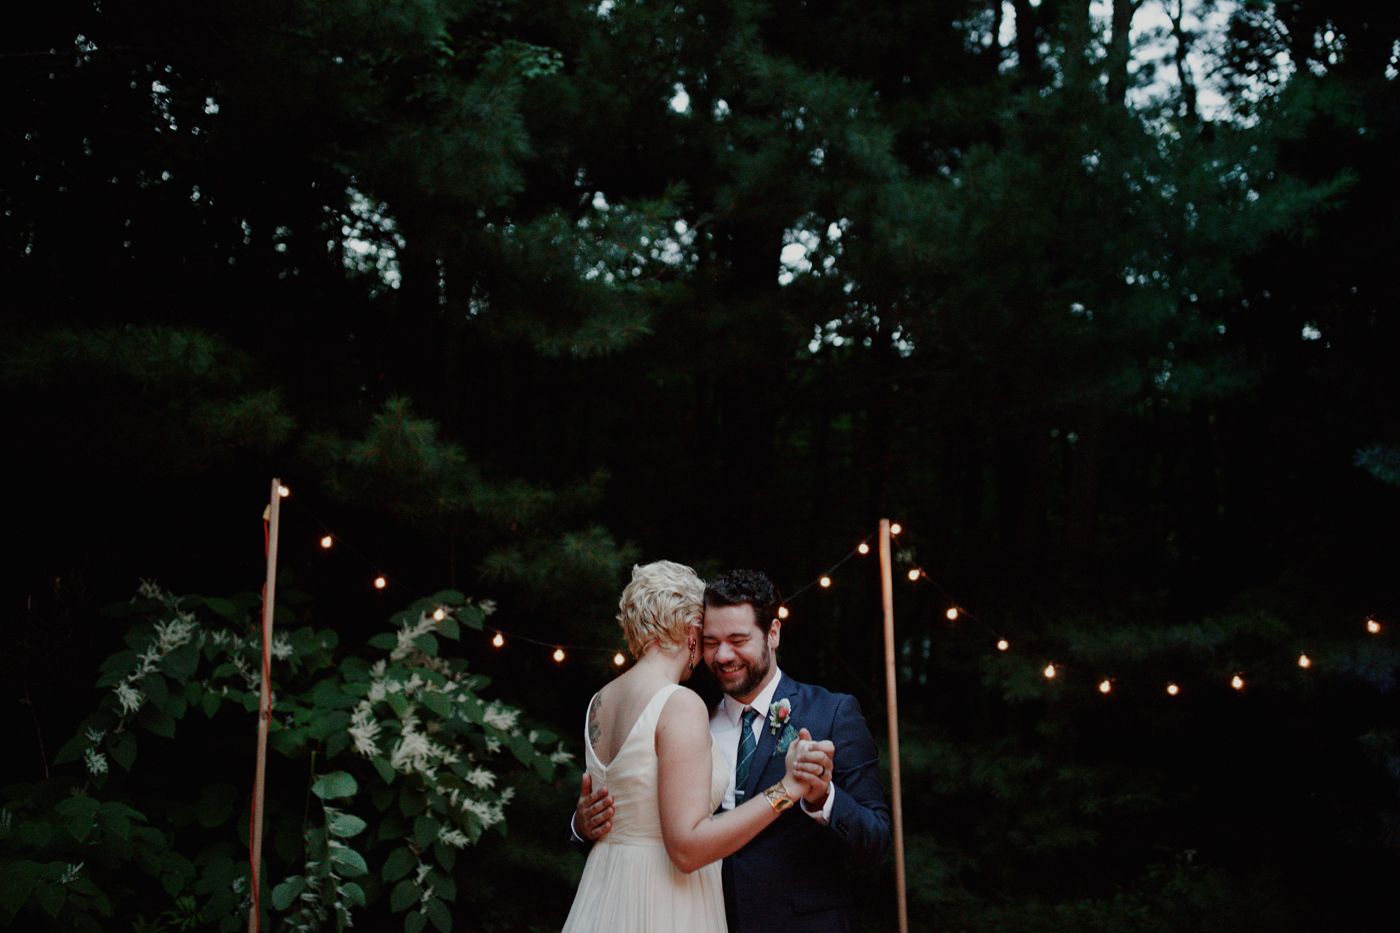 amandavanvels_backyardwedding_0781.jpg